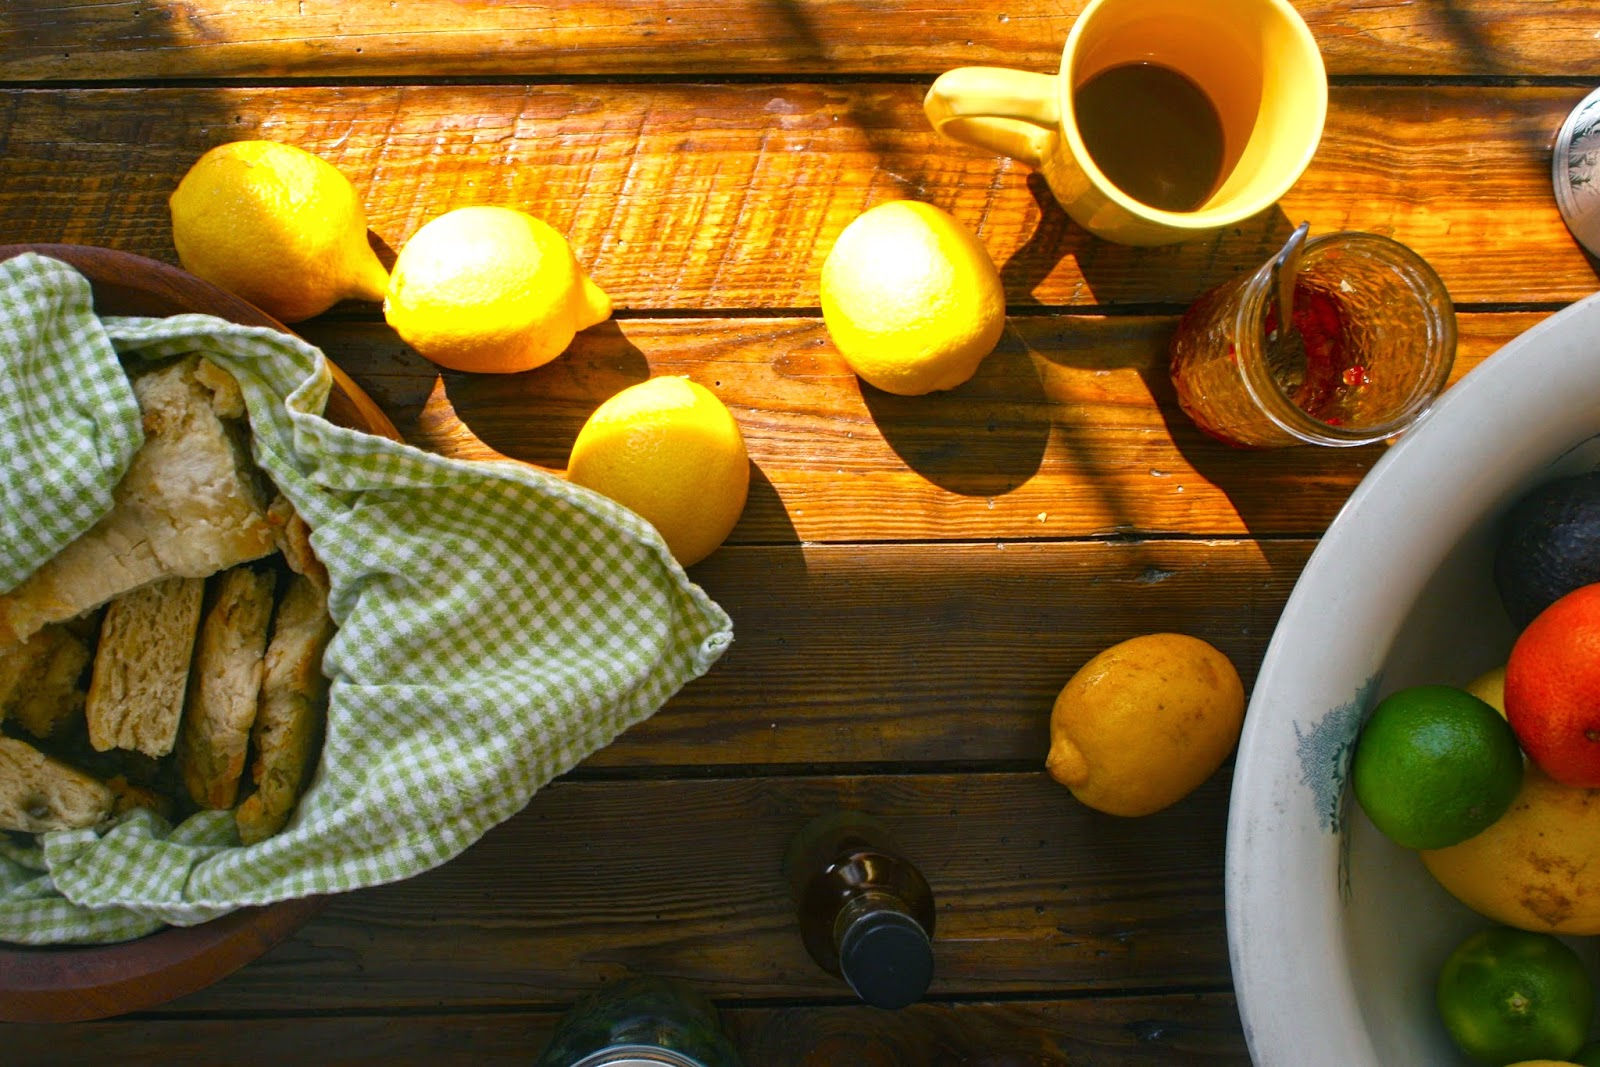 Lemons, Limes, Oranges and Grapefruit on Table with Biscuits and Jam